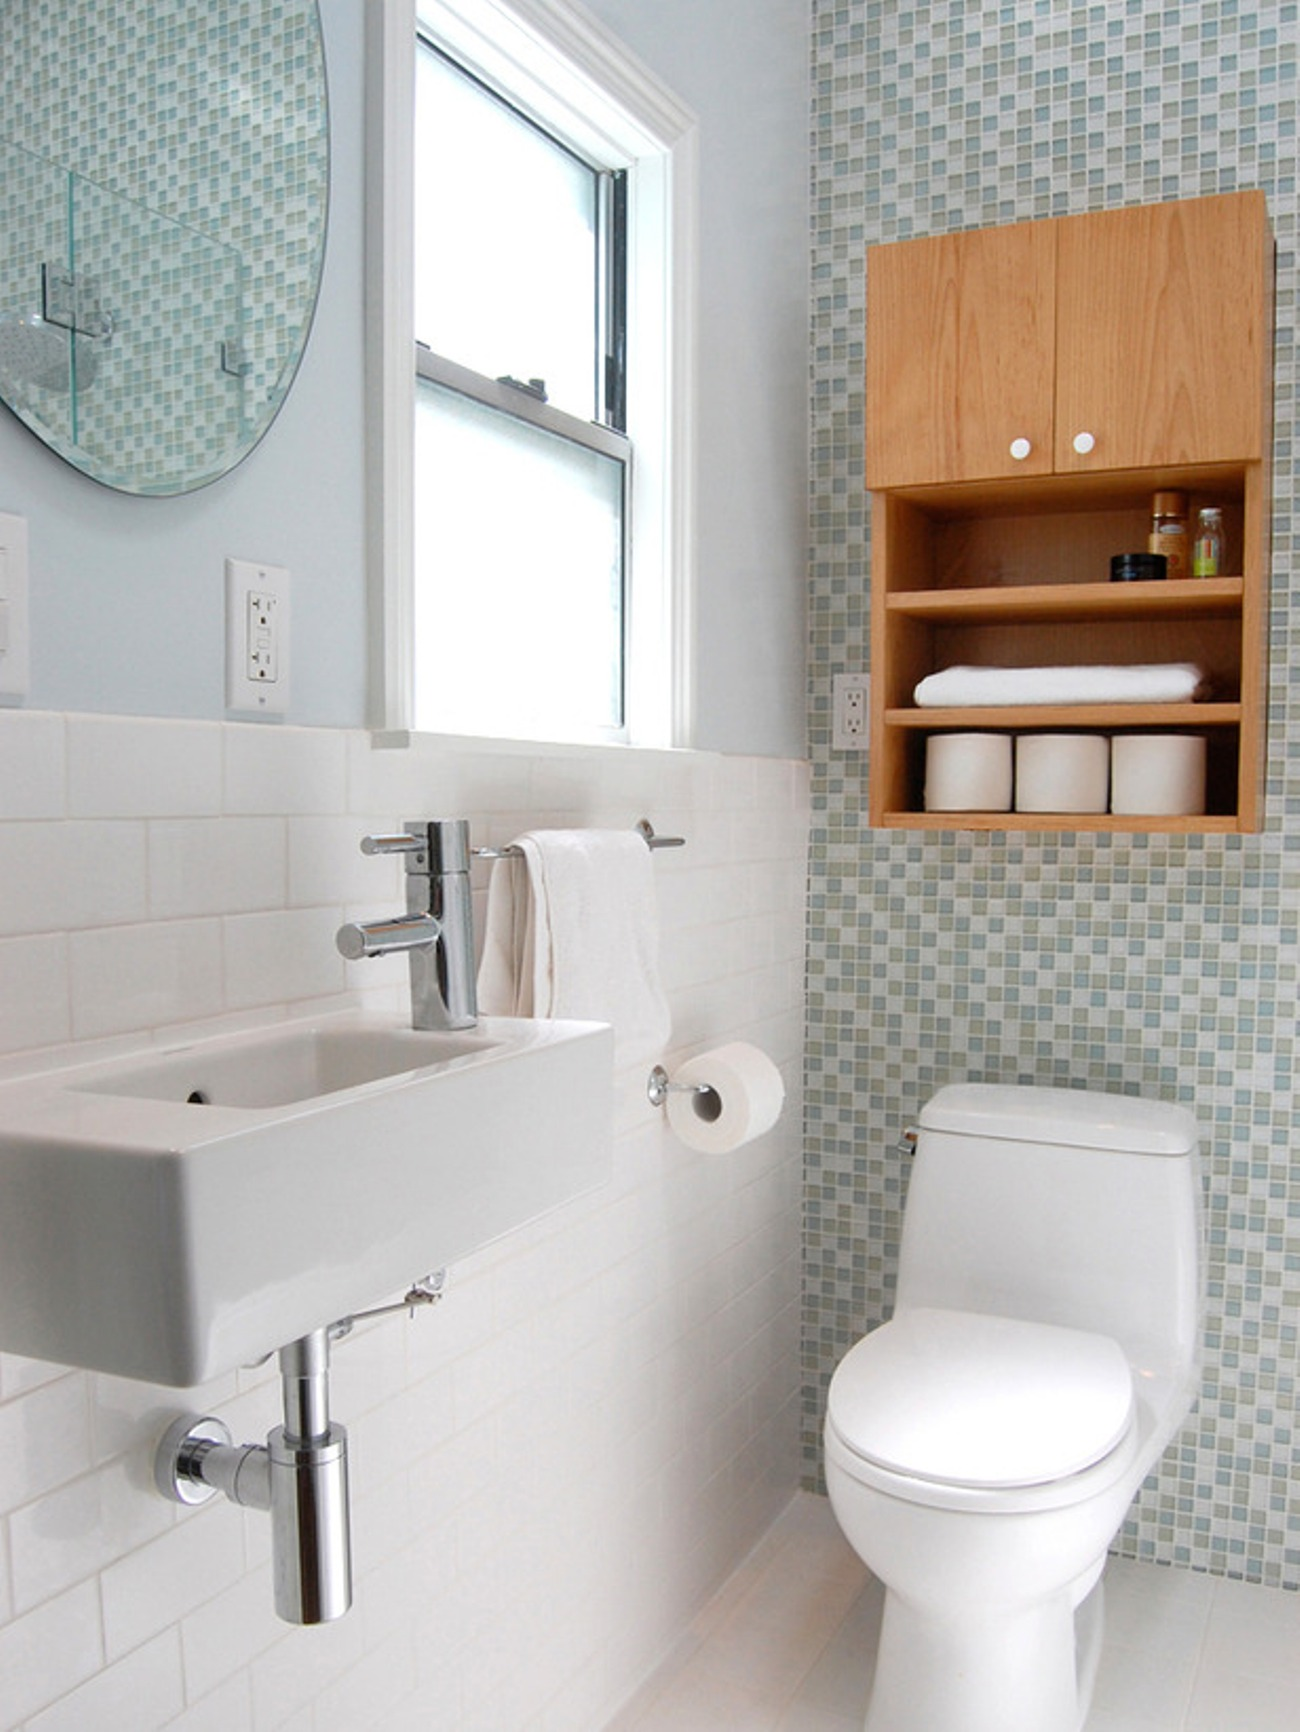 small-bathroom-design-ideas-with-traditional-mini-toilet-and-sink-with-bracket-and-subway-tiles-and-wallpaper-and-bathroom-storage-over-toilet